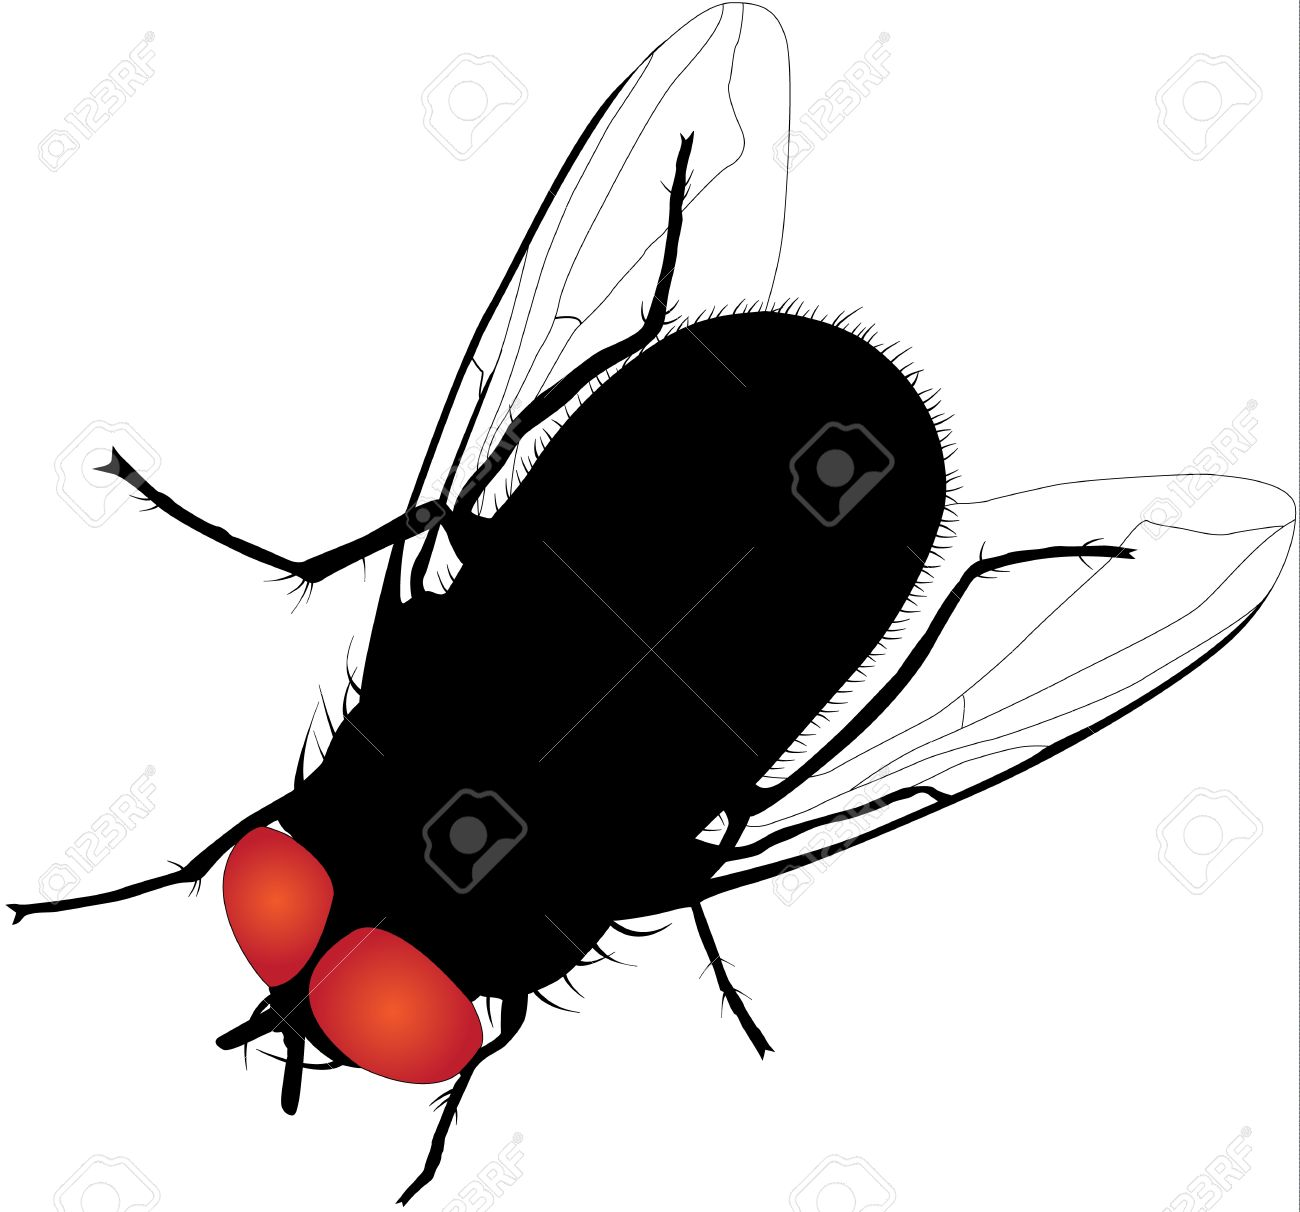 House Fly Silhouette On White Background Royalty Free Cliparts ...